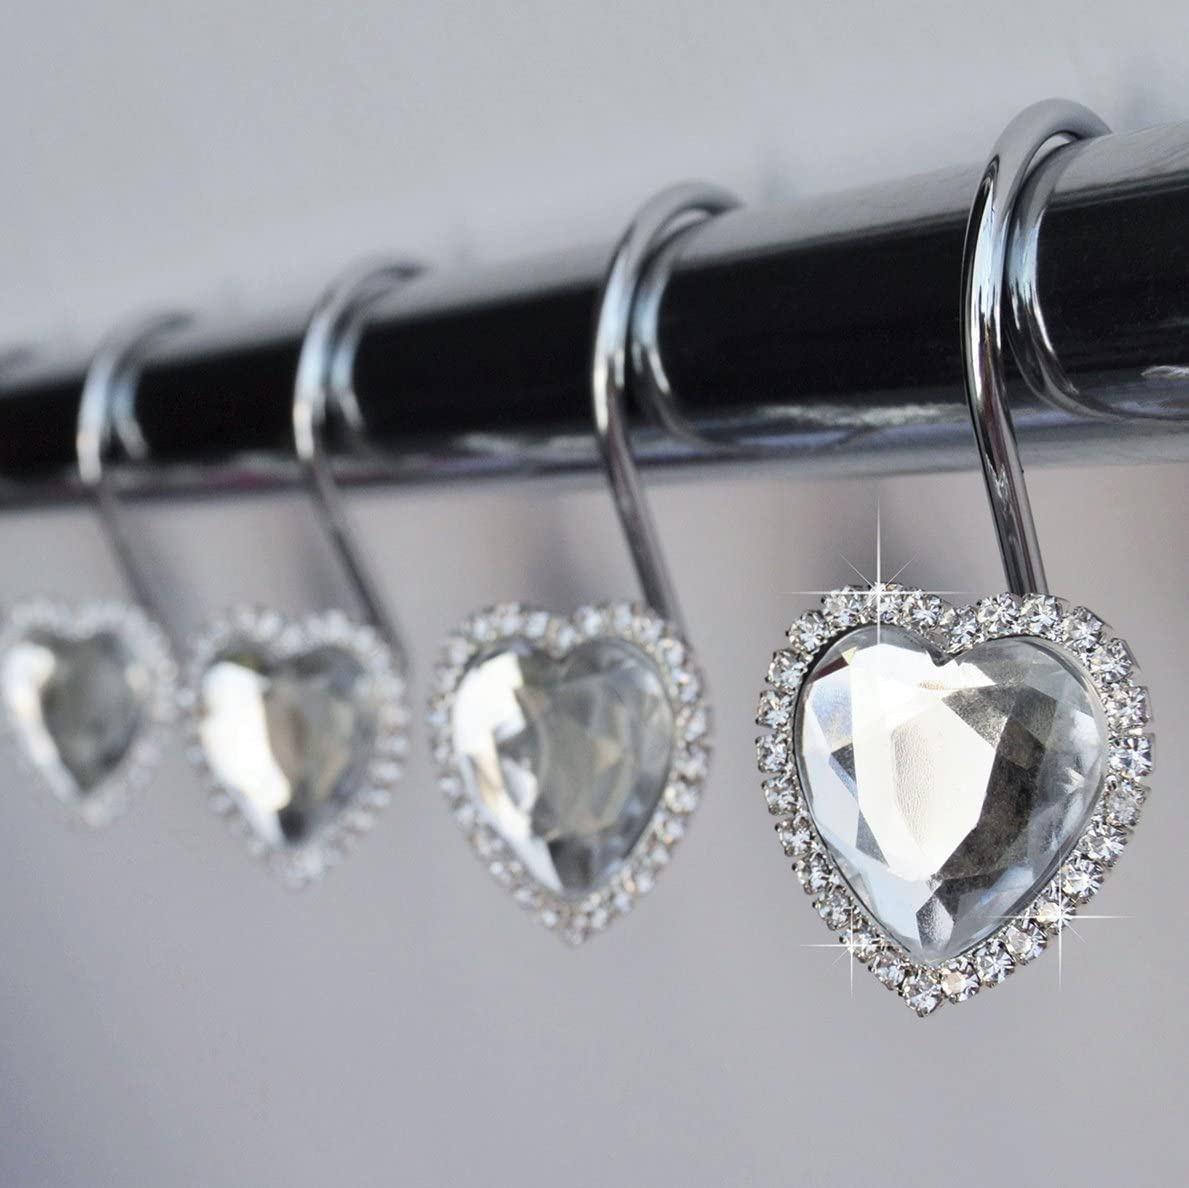 A surprise price is realized Shower Curtain Hooks Rings - Diam Clear Heart Decorative Crystal Attention brand